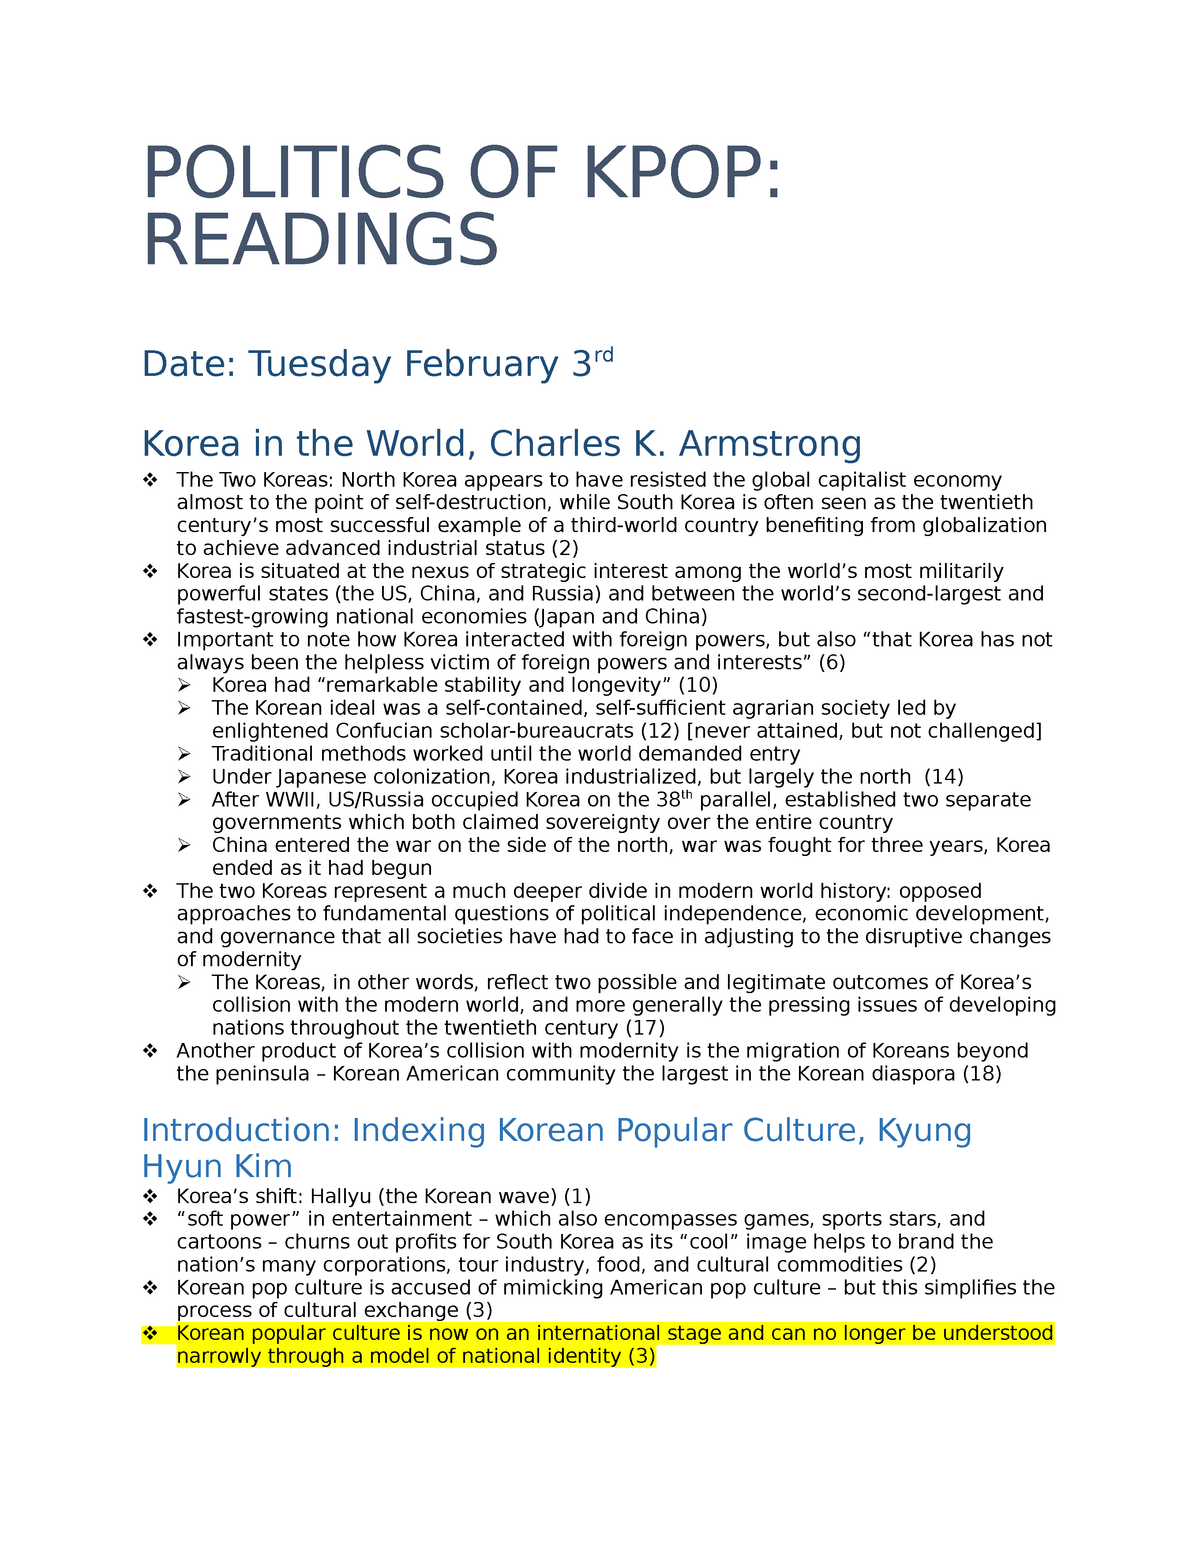 Reading notes - SCAUA481002: Gender, Globalization, and the